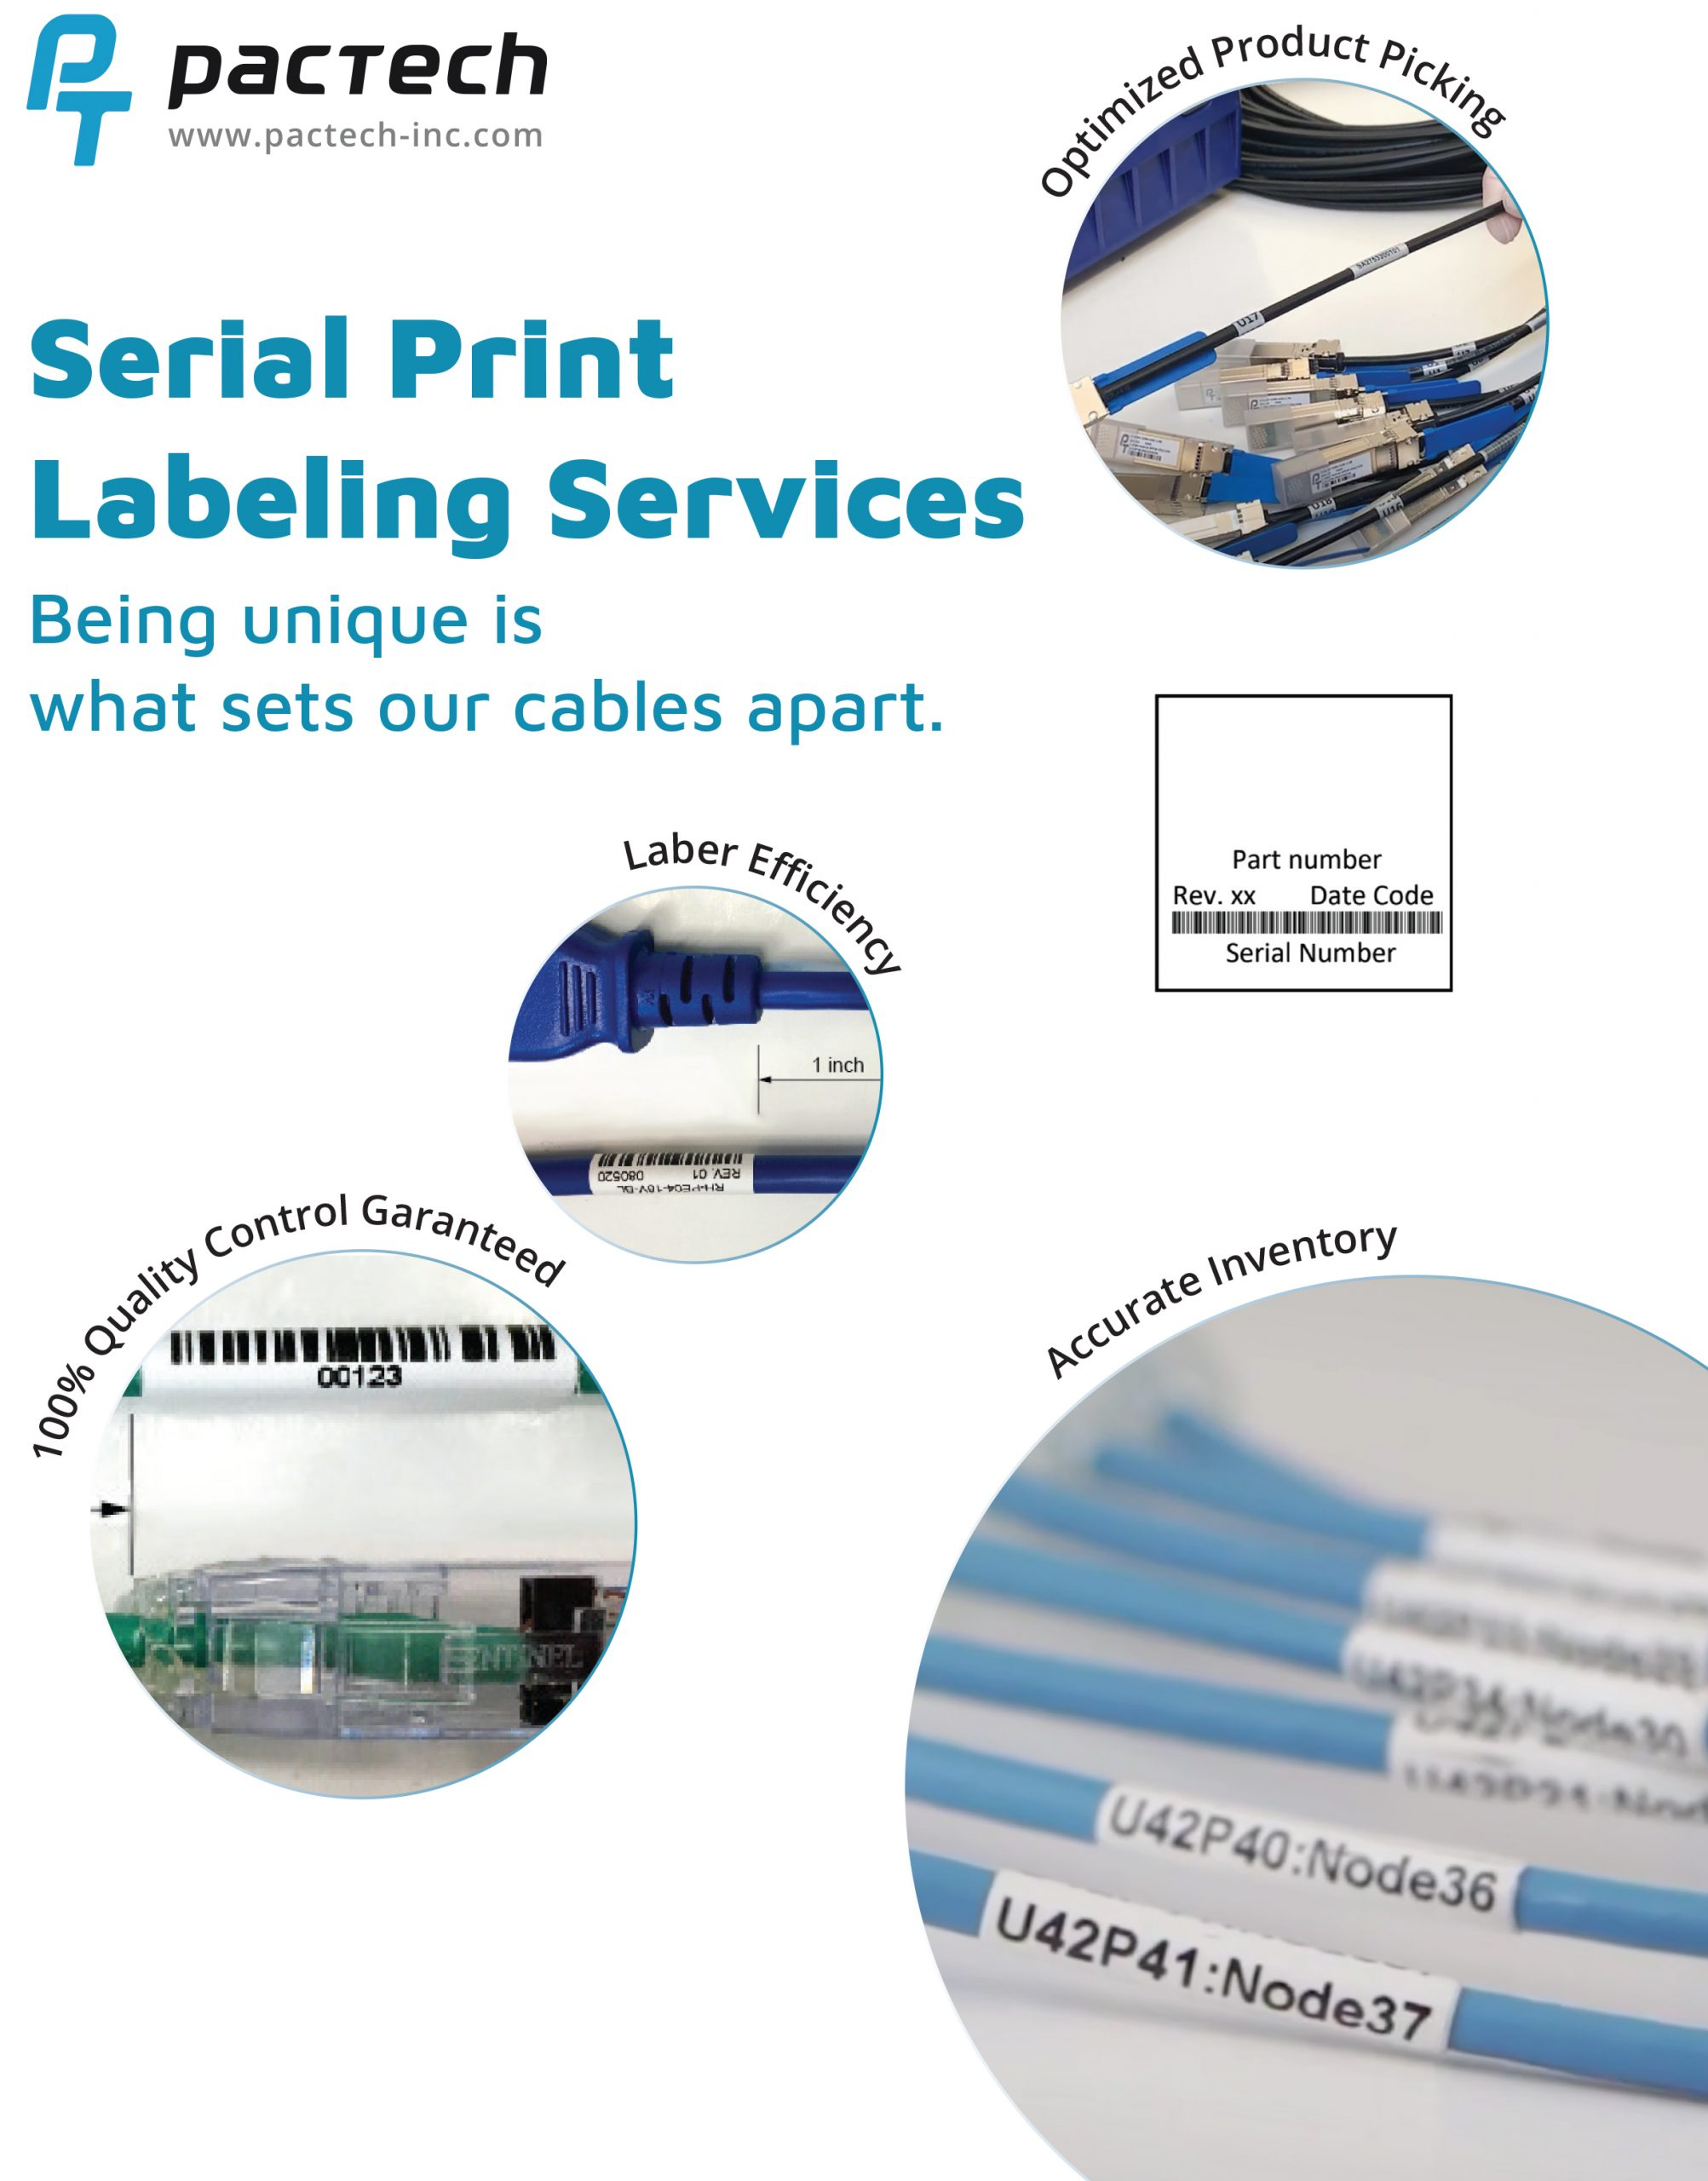 serial-print-labeling-services